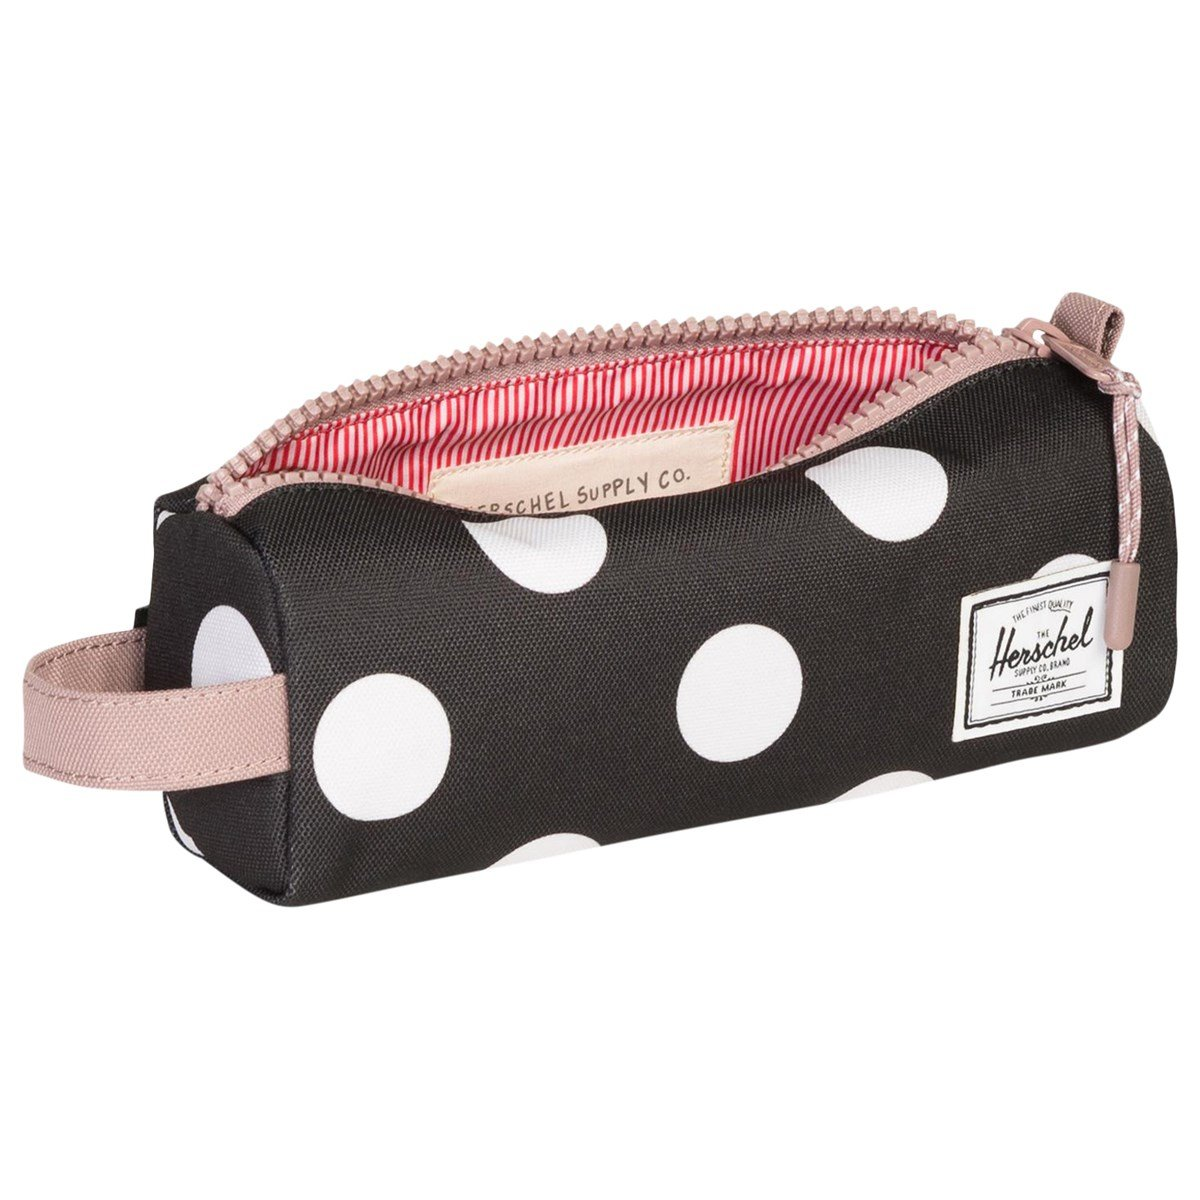 b618a9e235e Herschel Supply Co Black Polka Dot Ash Rose Settlement Case ...